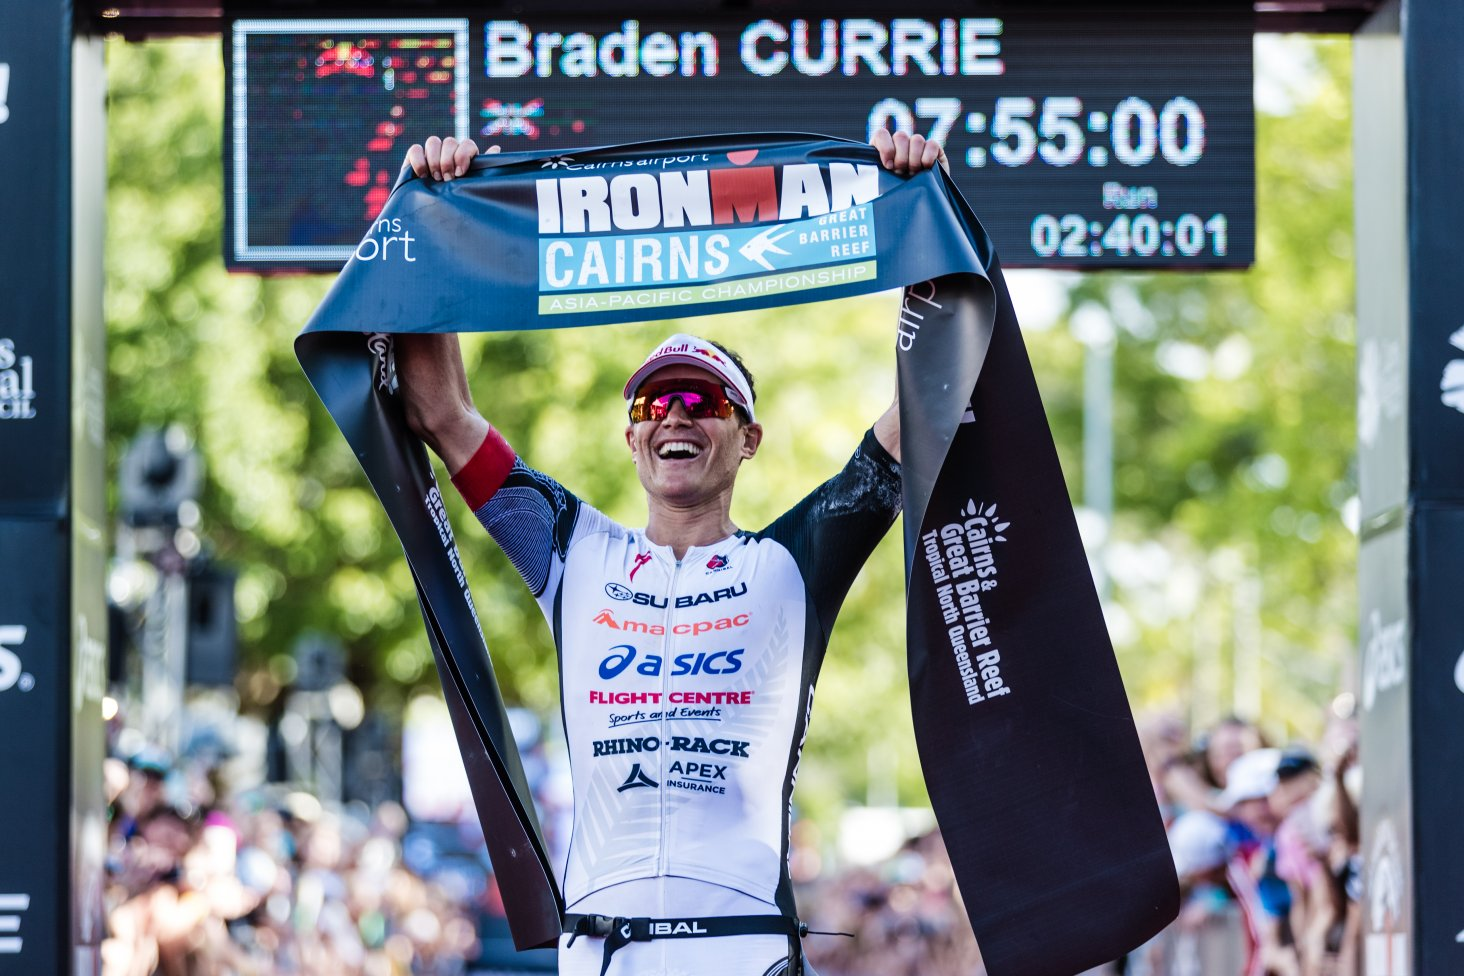 Braden Currie wins Ironman Cairns 2018. Photo Credit Korupt Vision